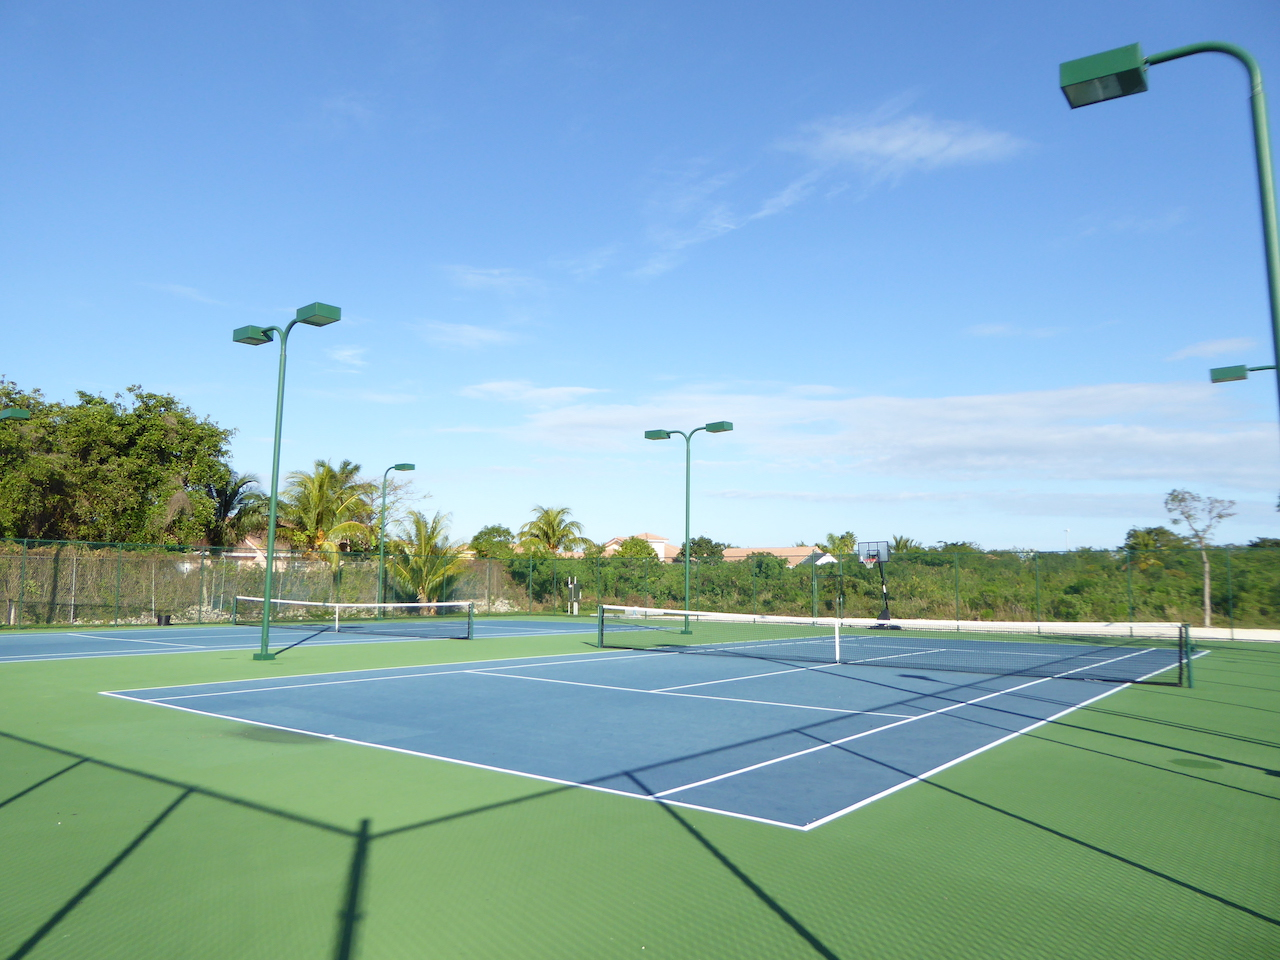 palm cay tennis courts